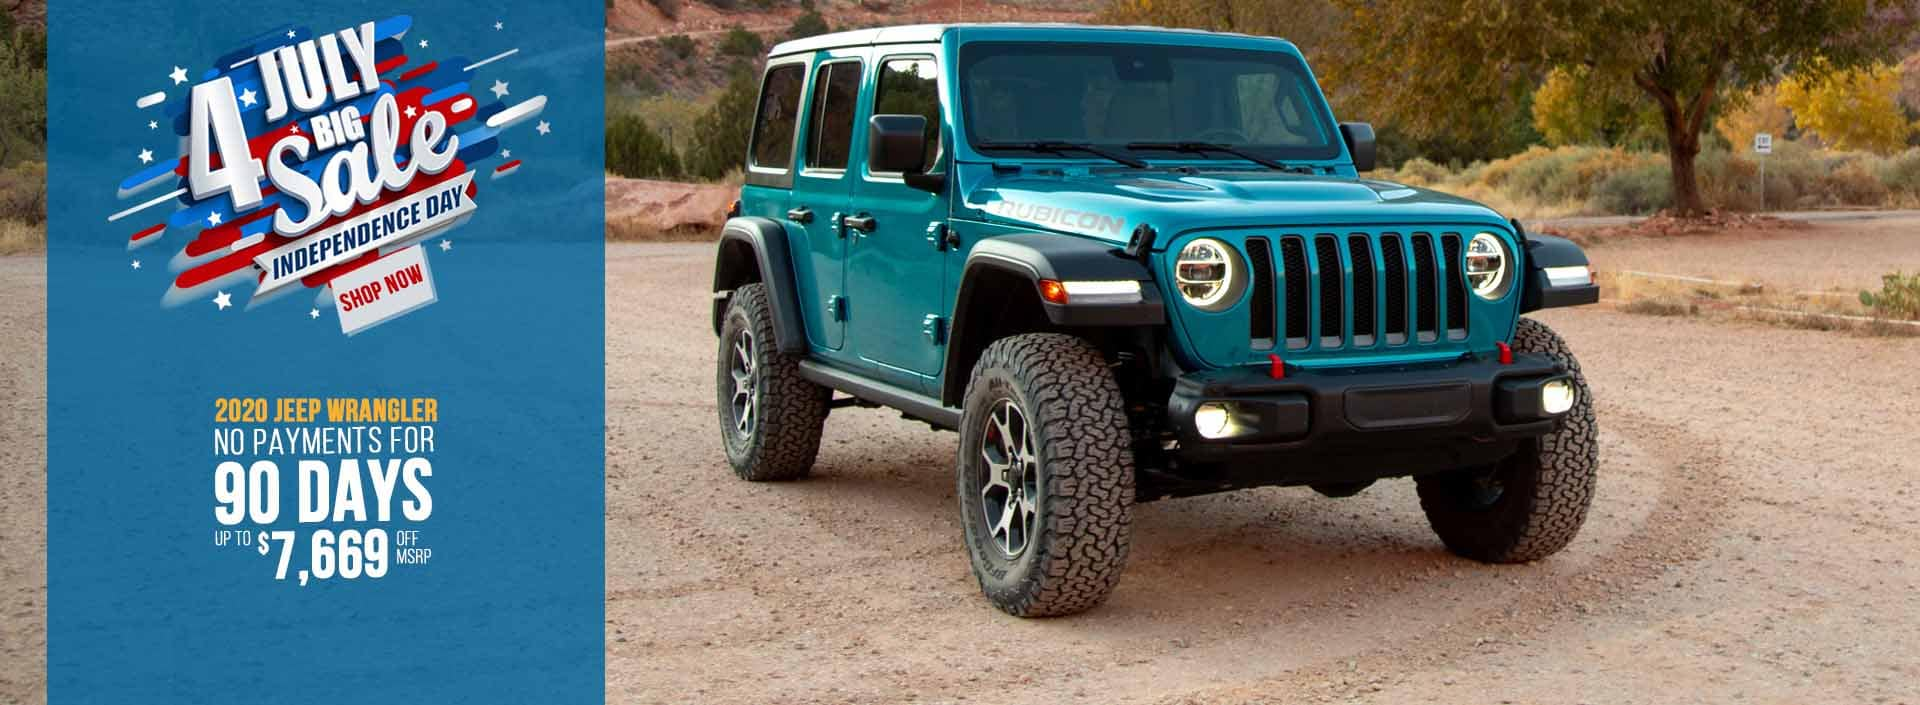 Jeep Wrangler 4th of July sale